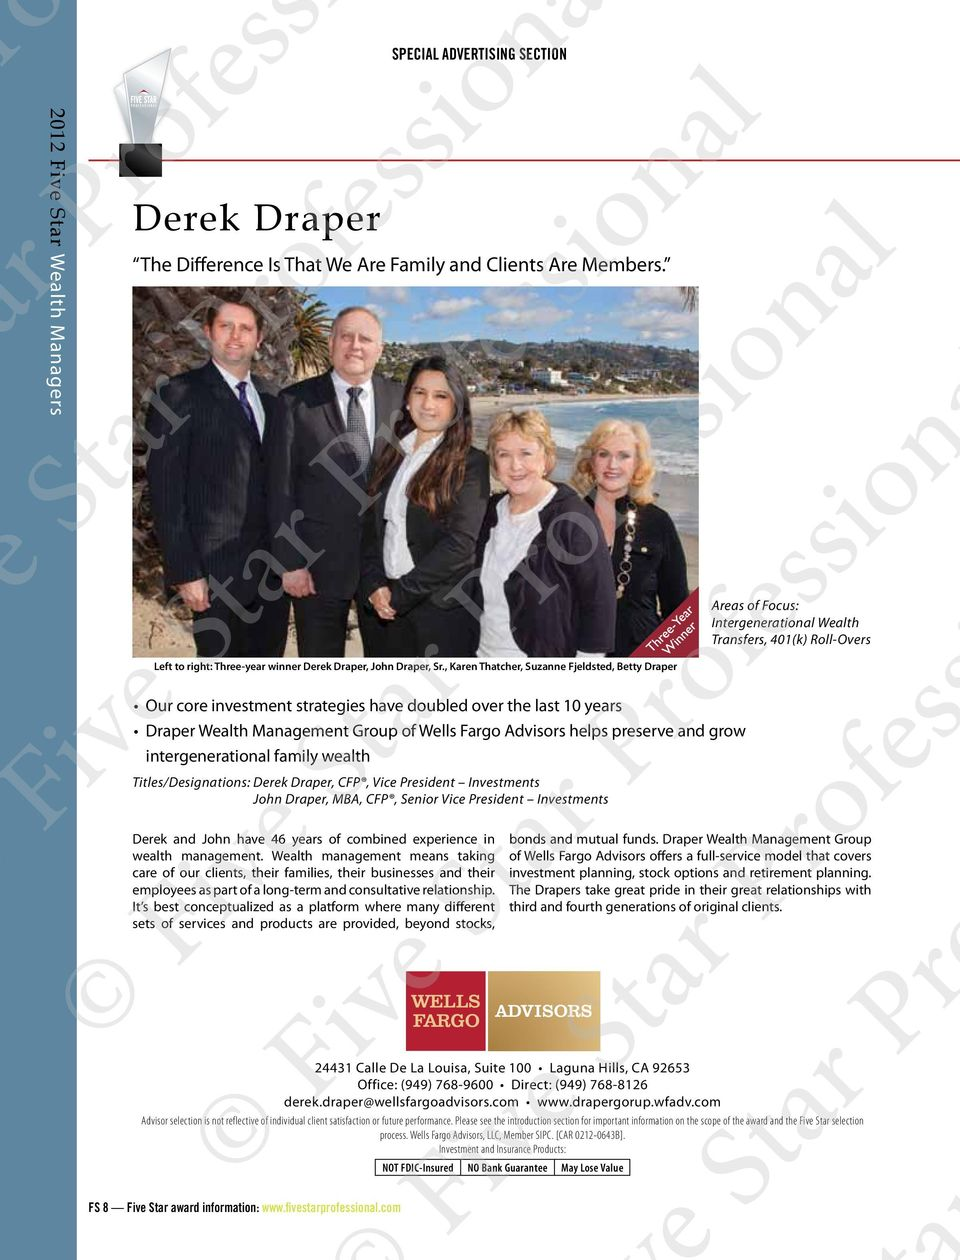 , Karen Thatcher, Suzanne Fjeldsted, Betty Draper Our core investment strategies have doubled over the last 10 years Draper Wealth Management Group of Wells Fargo Advisors helps preserve and grow